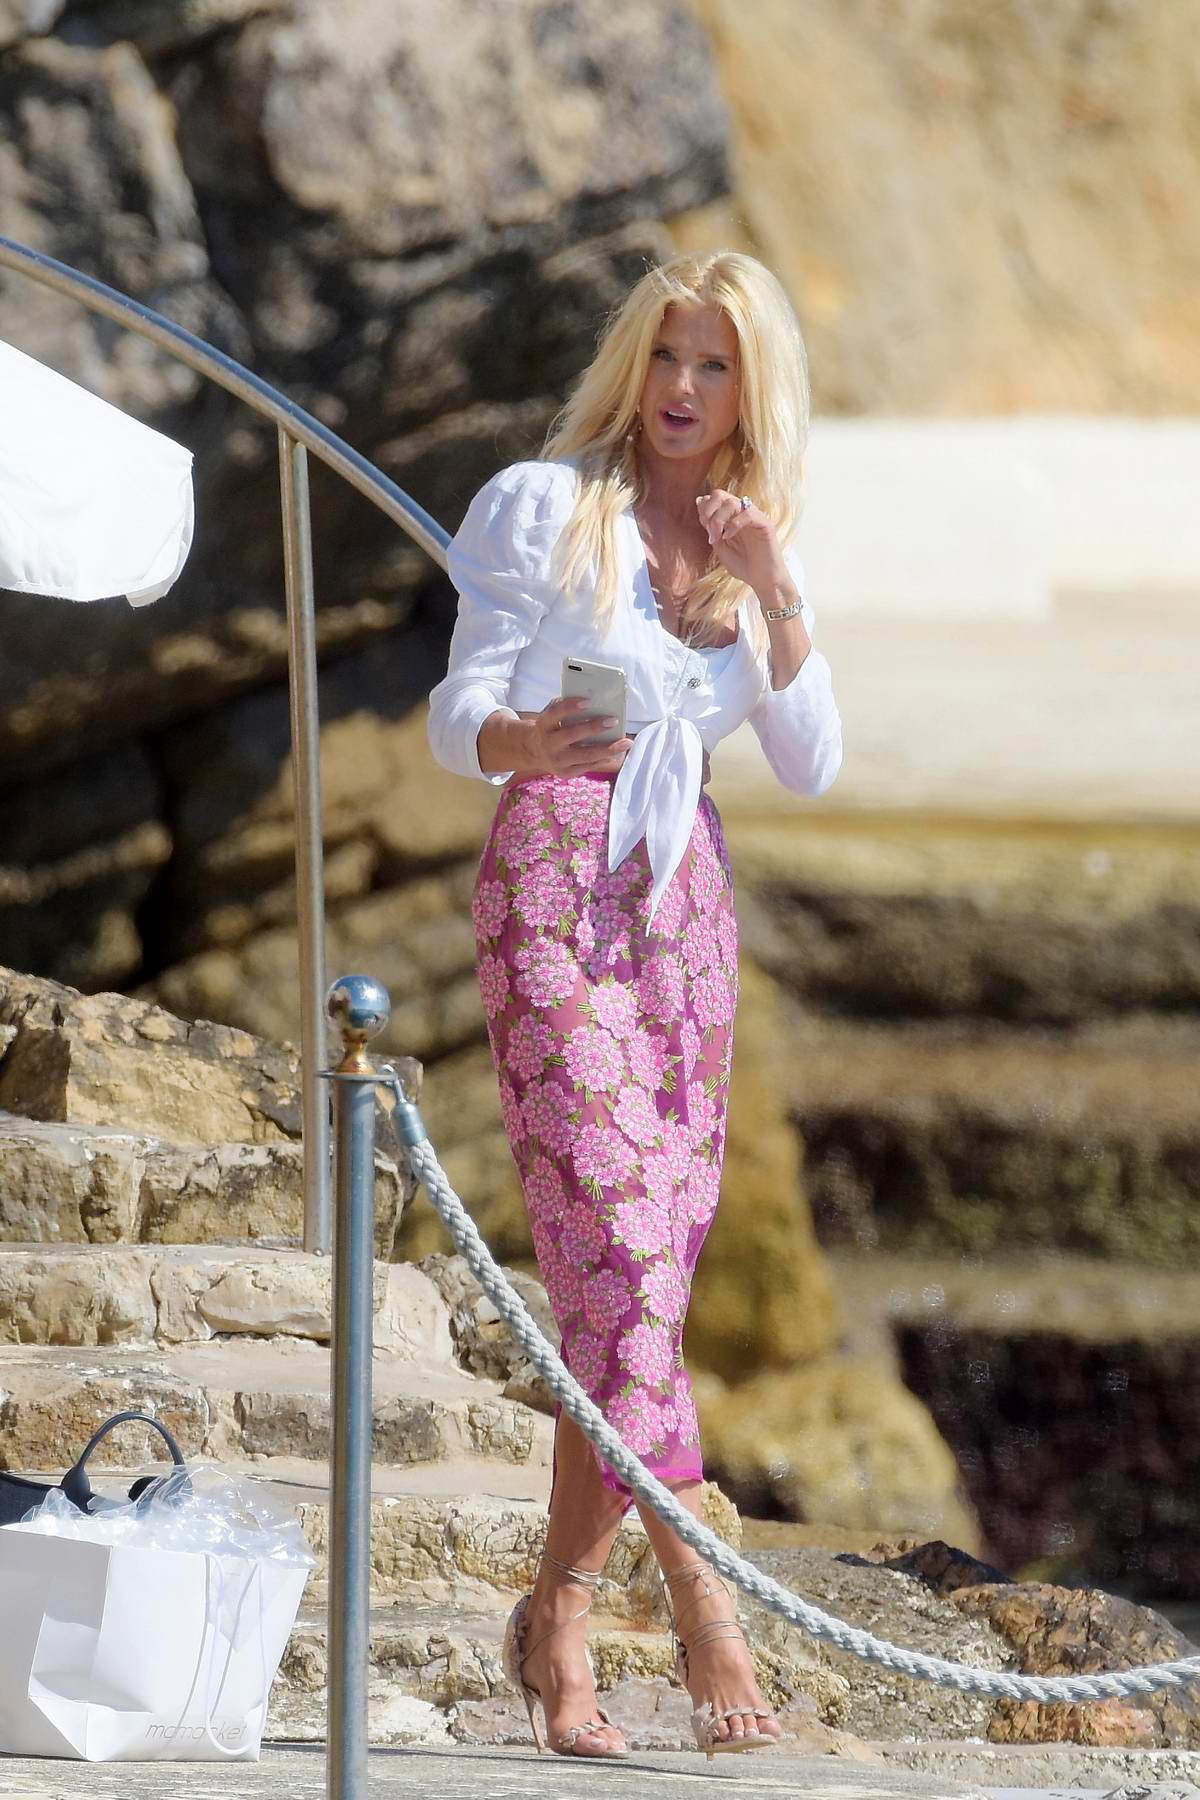 Victoria Silvstedt enjoying the day with her mother at Hotel du Cap-Eden-Roc in Antibes, France